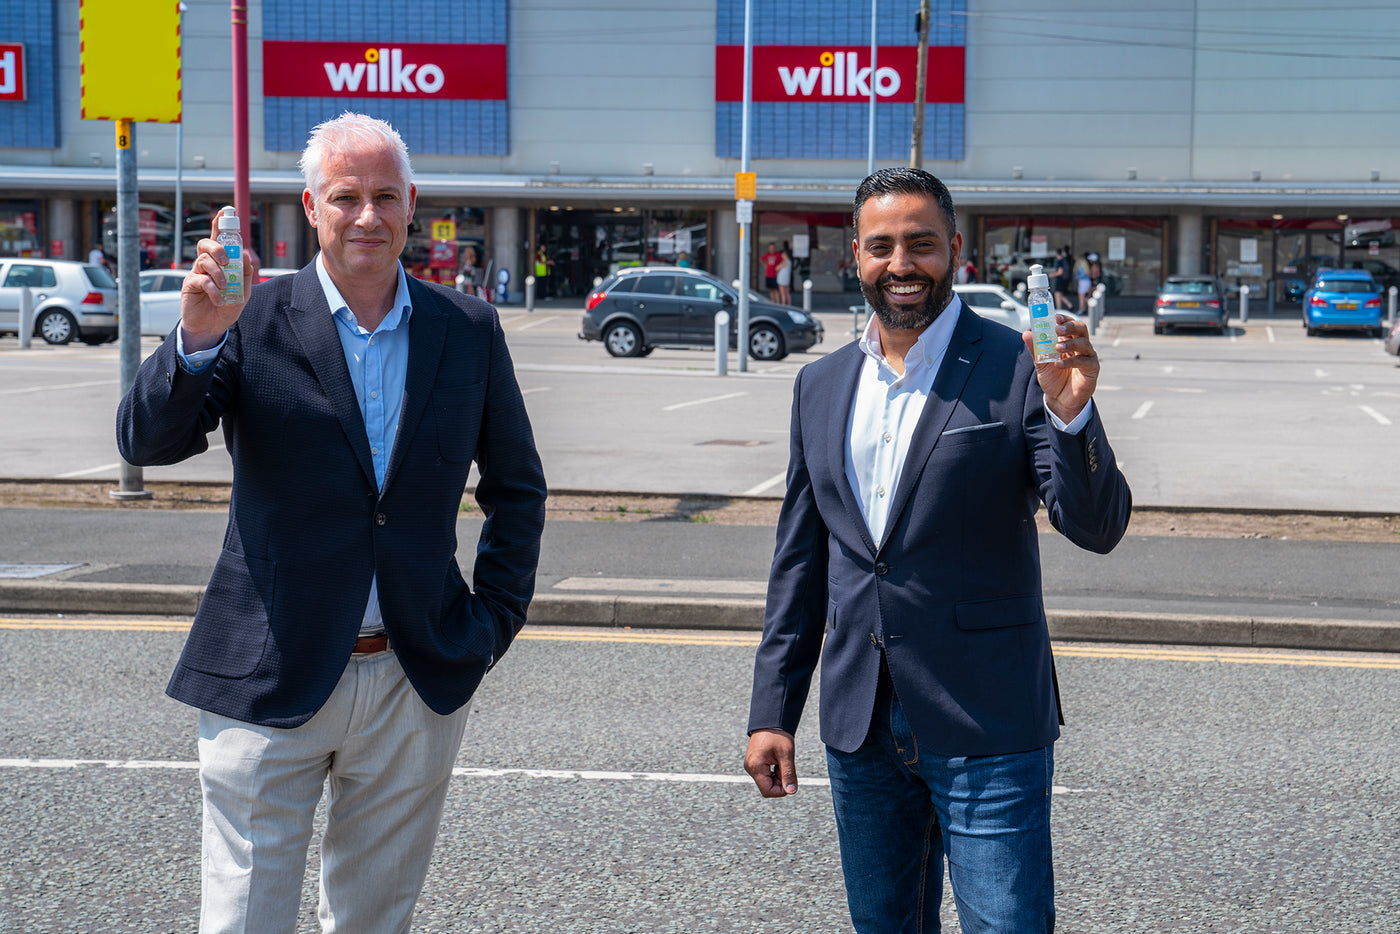 NEW UK PPE BRAND SANDITIZE, LAUNCHES  WITH WILKO TO PUT 1 MILLION BOTTLES IN HANDS OF CONSUMERS